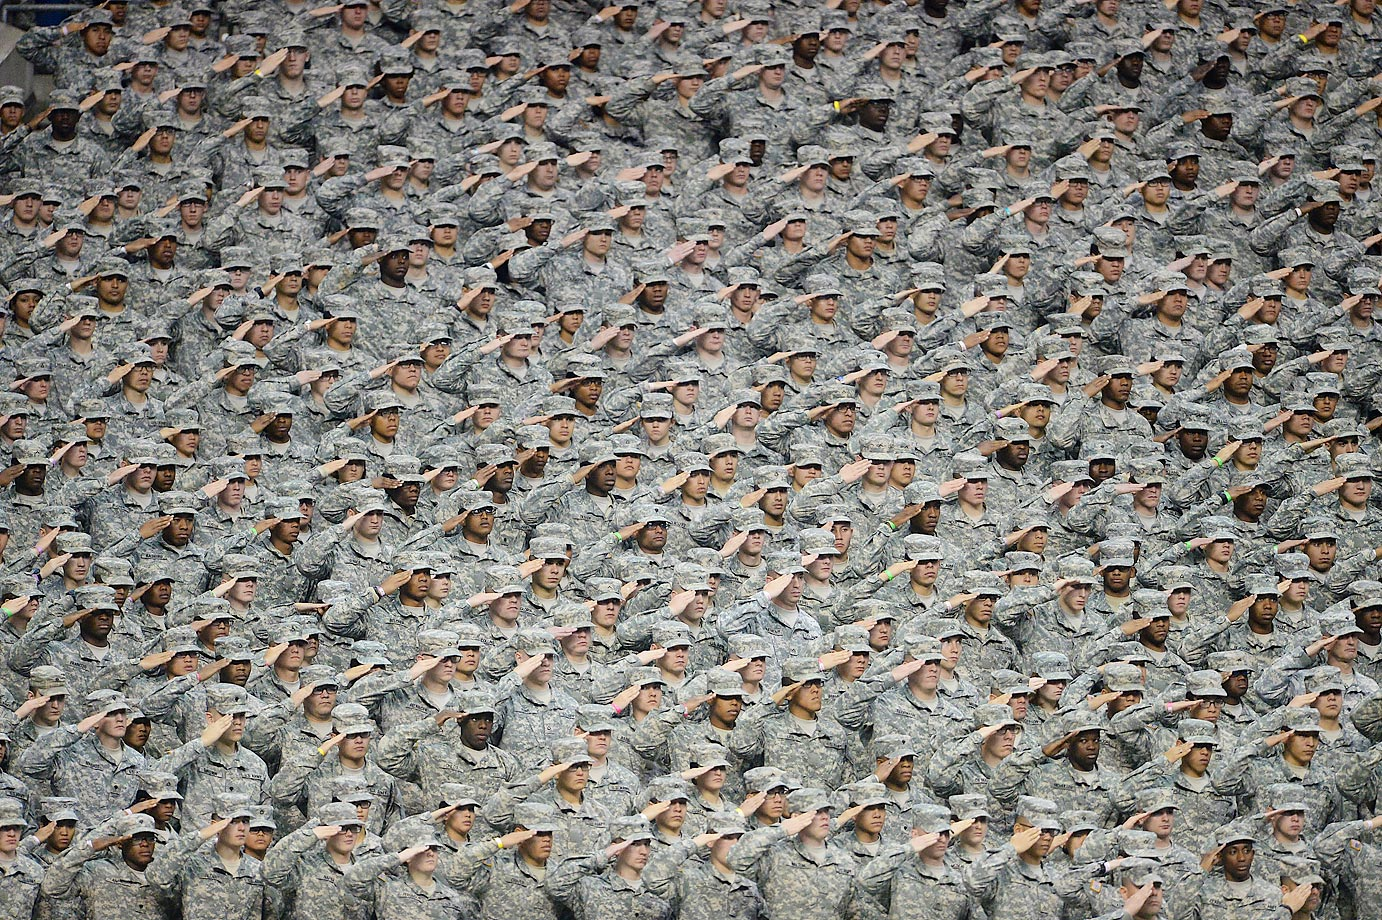 Members of the U.S. Army salute during the national anthem before the U.S. Army All-American Bowl in the Alamodome in San Antonio.